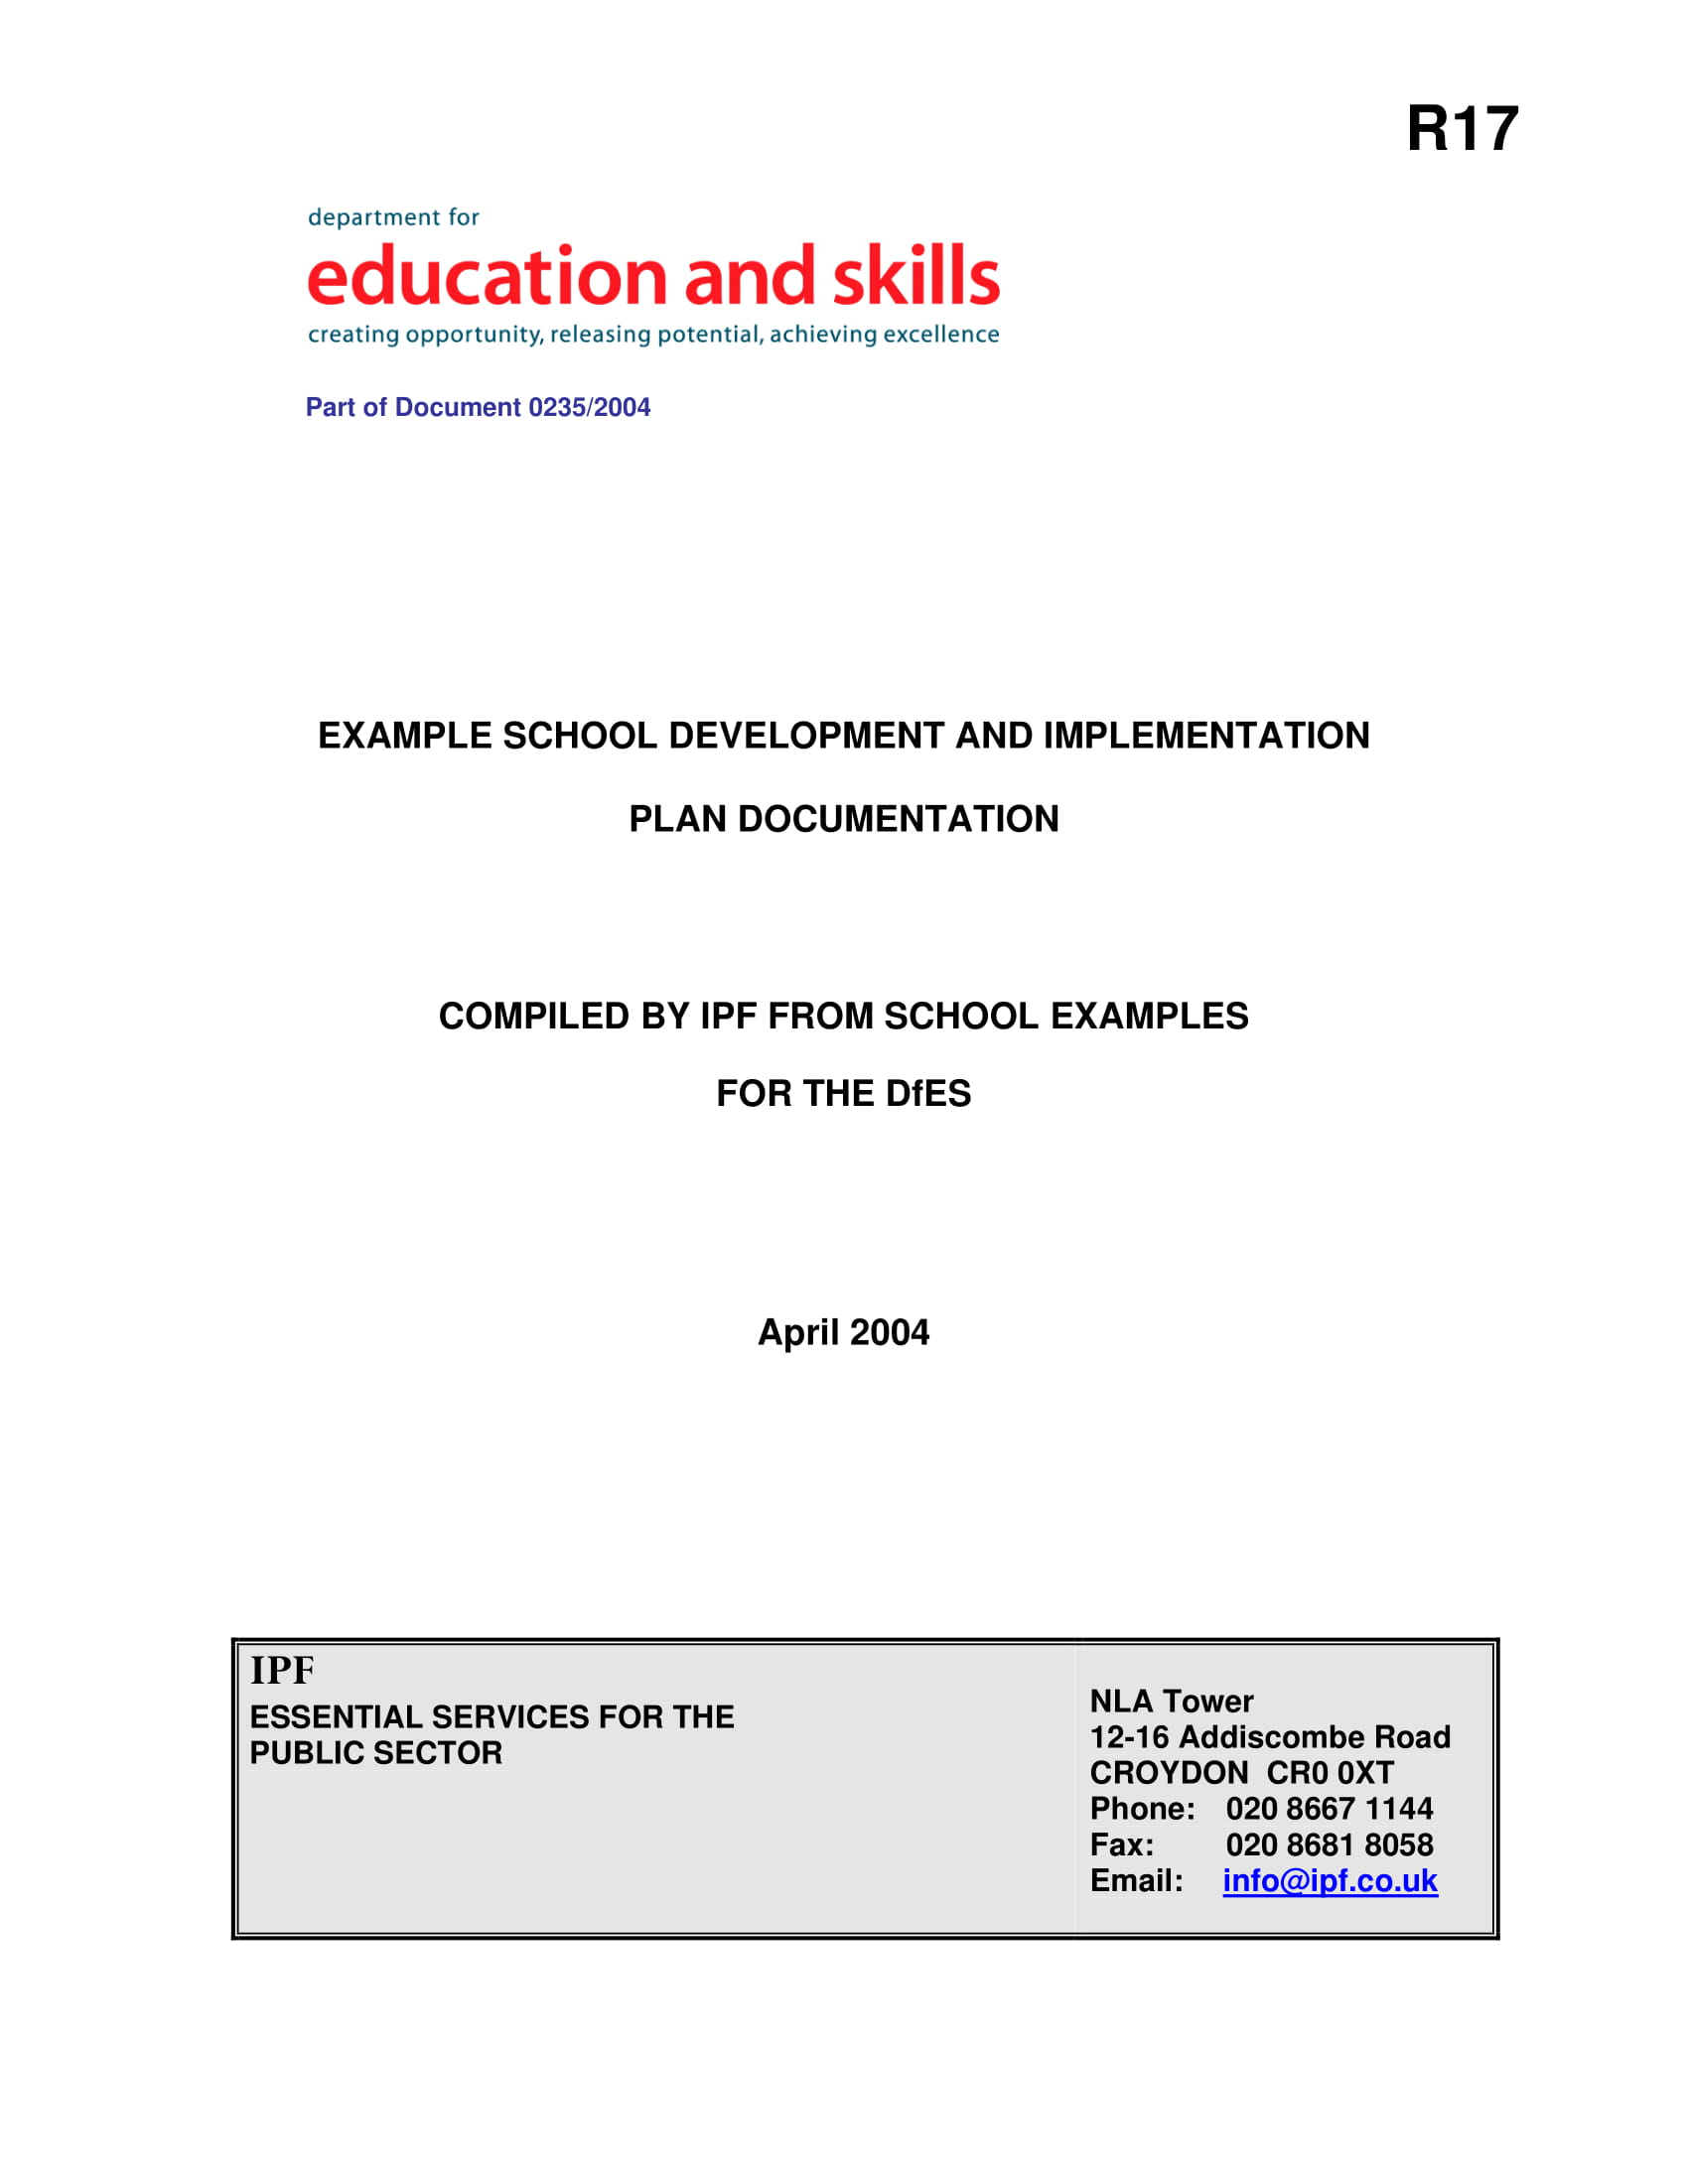 school development and implementation plan documentation for operations example 01